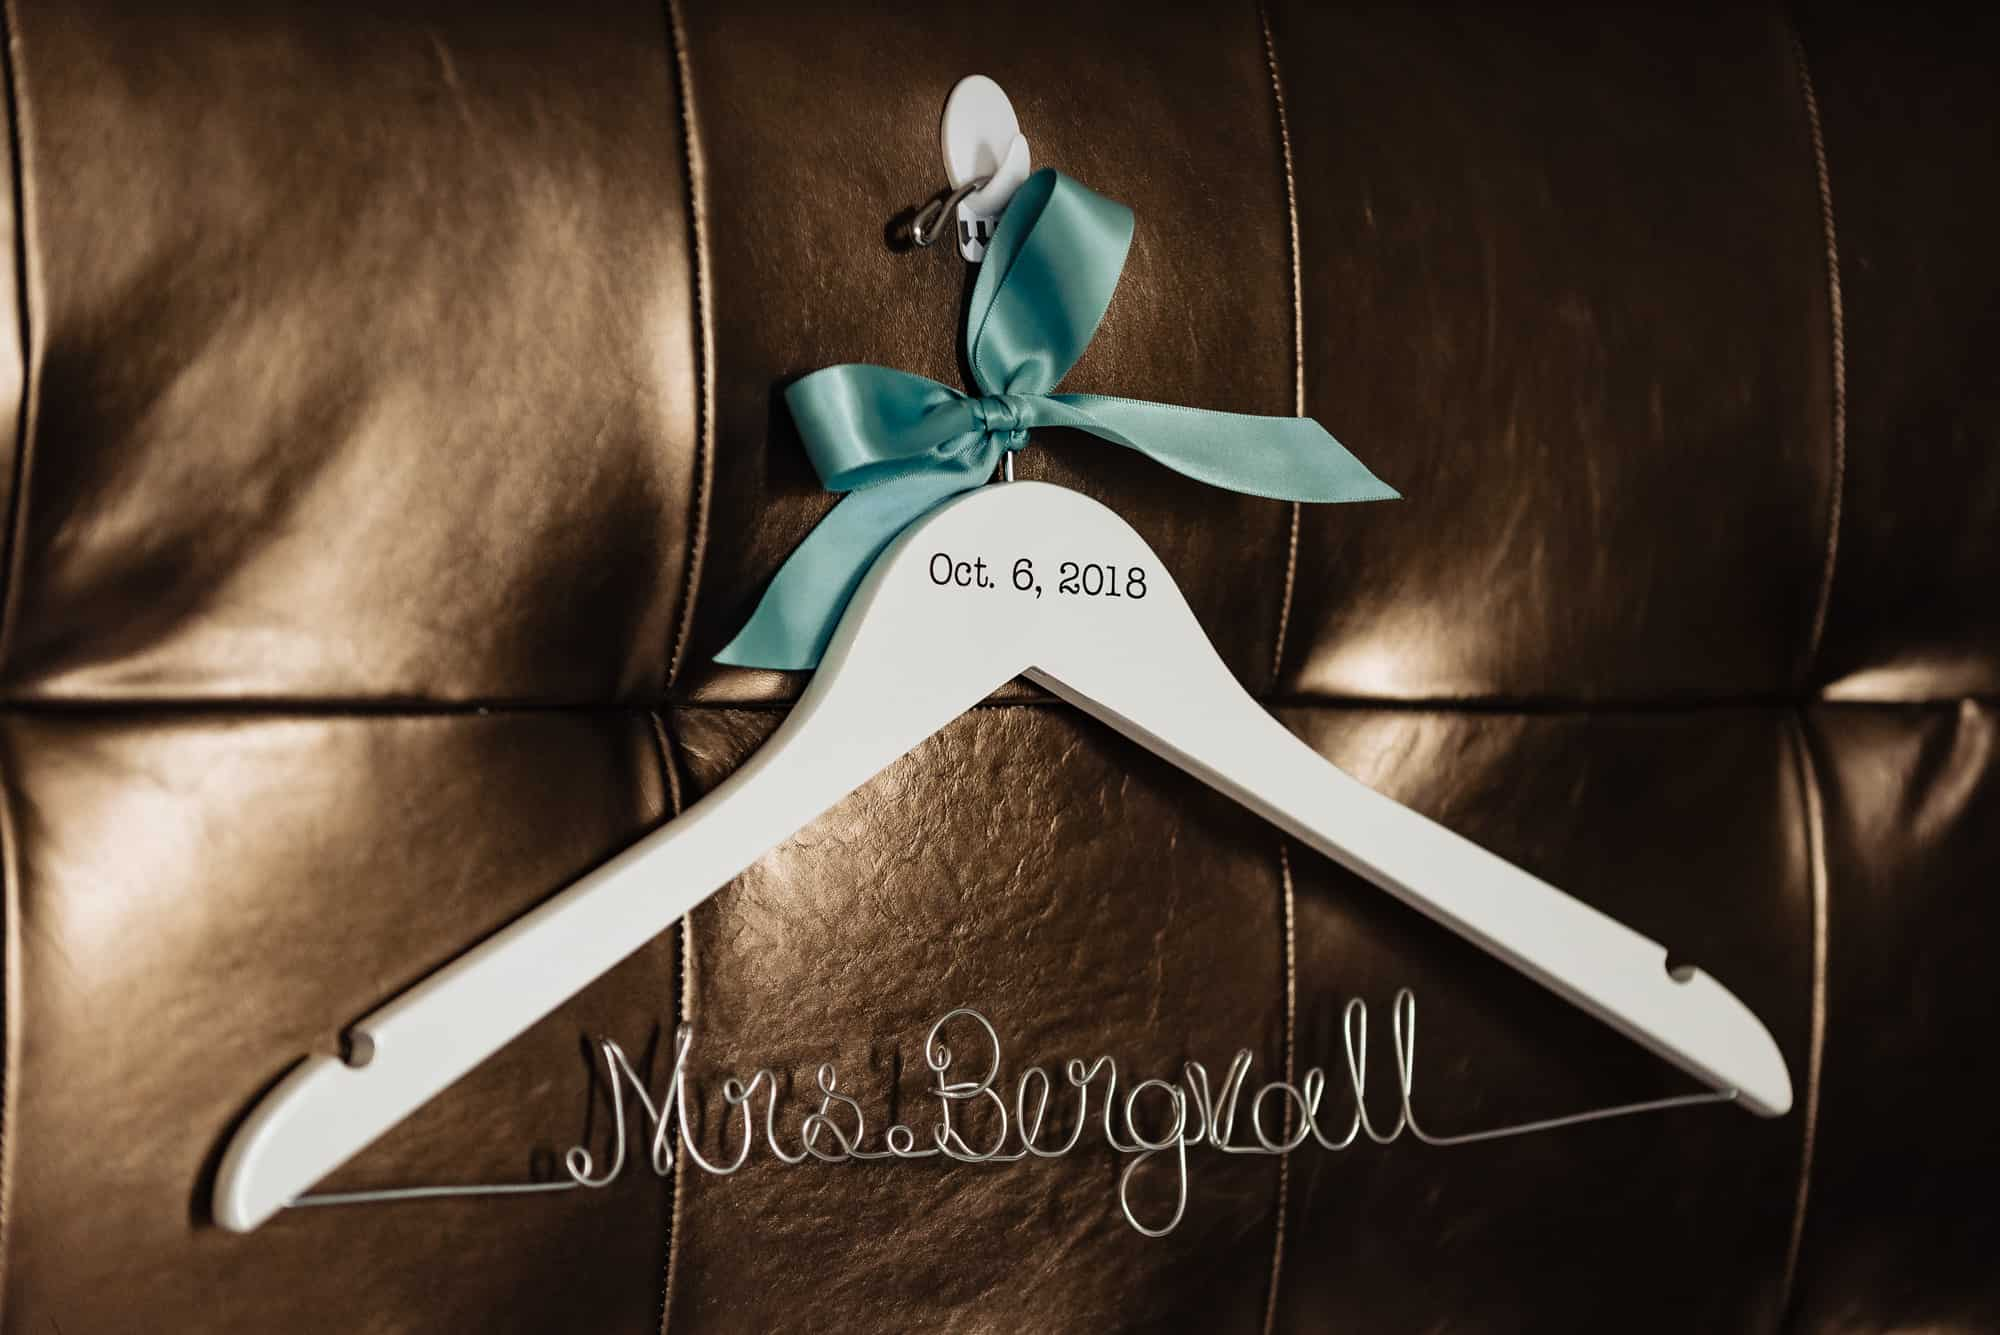 Ritz Carlton Philadelphia Wedding|custom dress hanger for brides dress